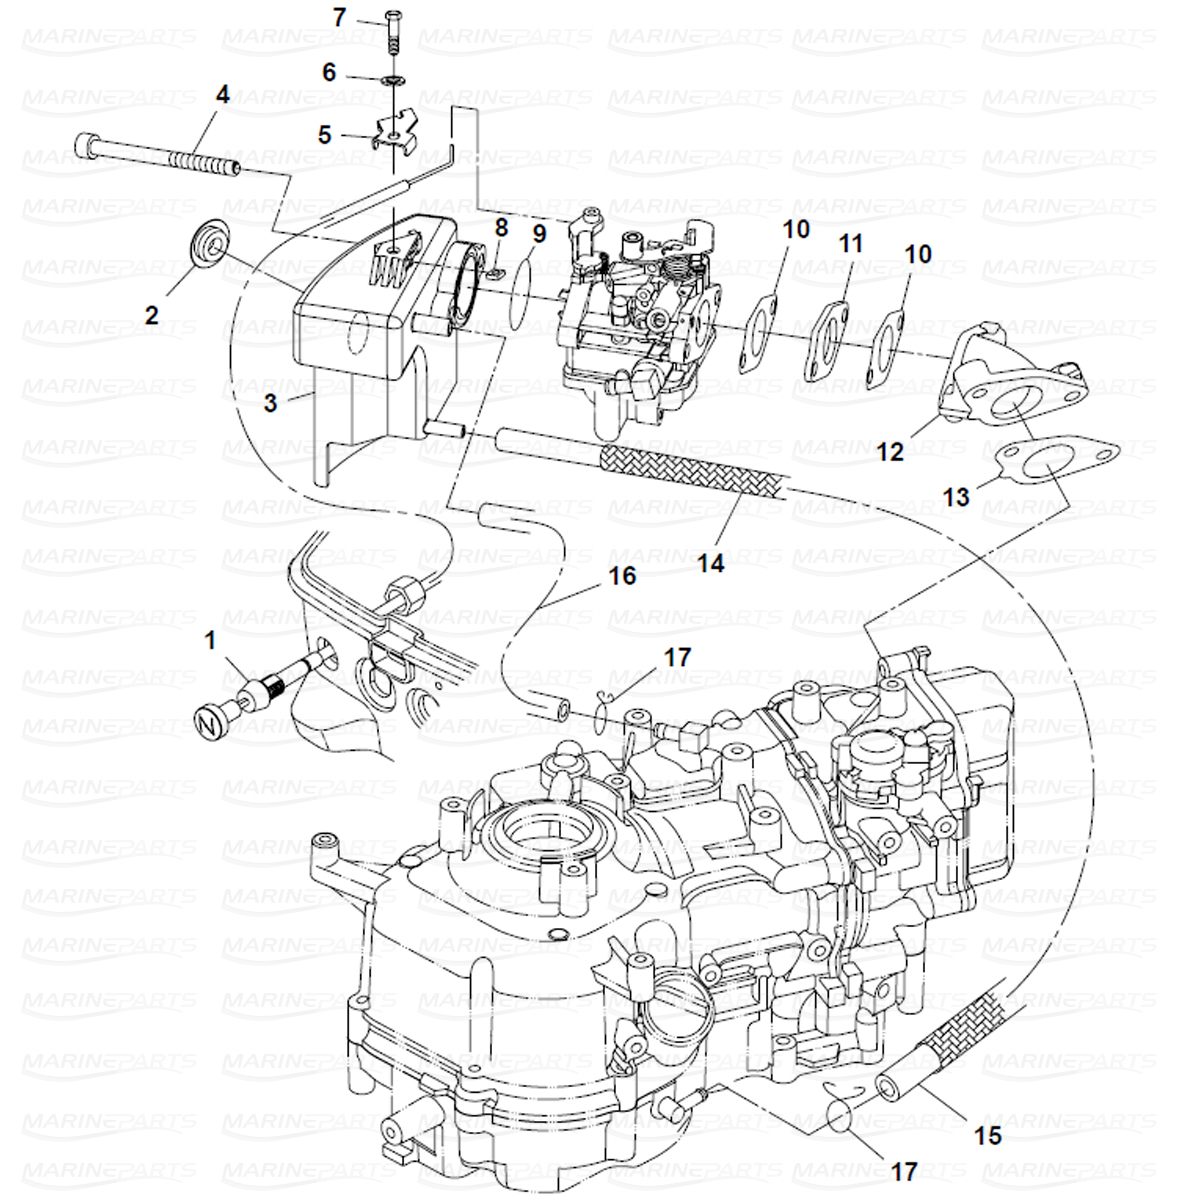 Exploded view intake, Parsun 6 hp